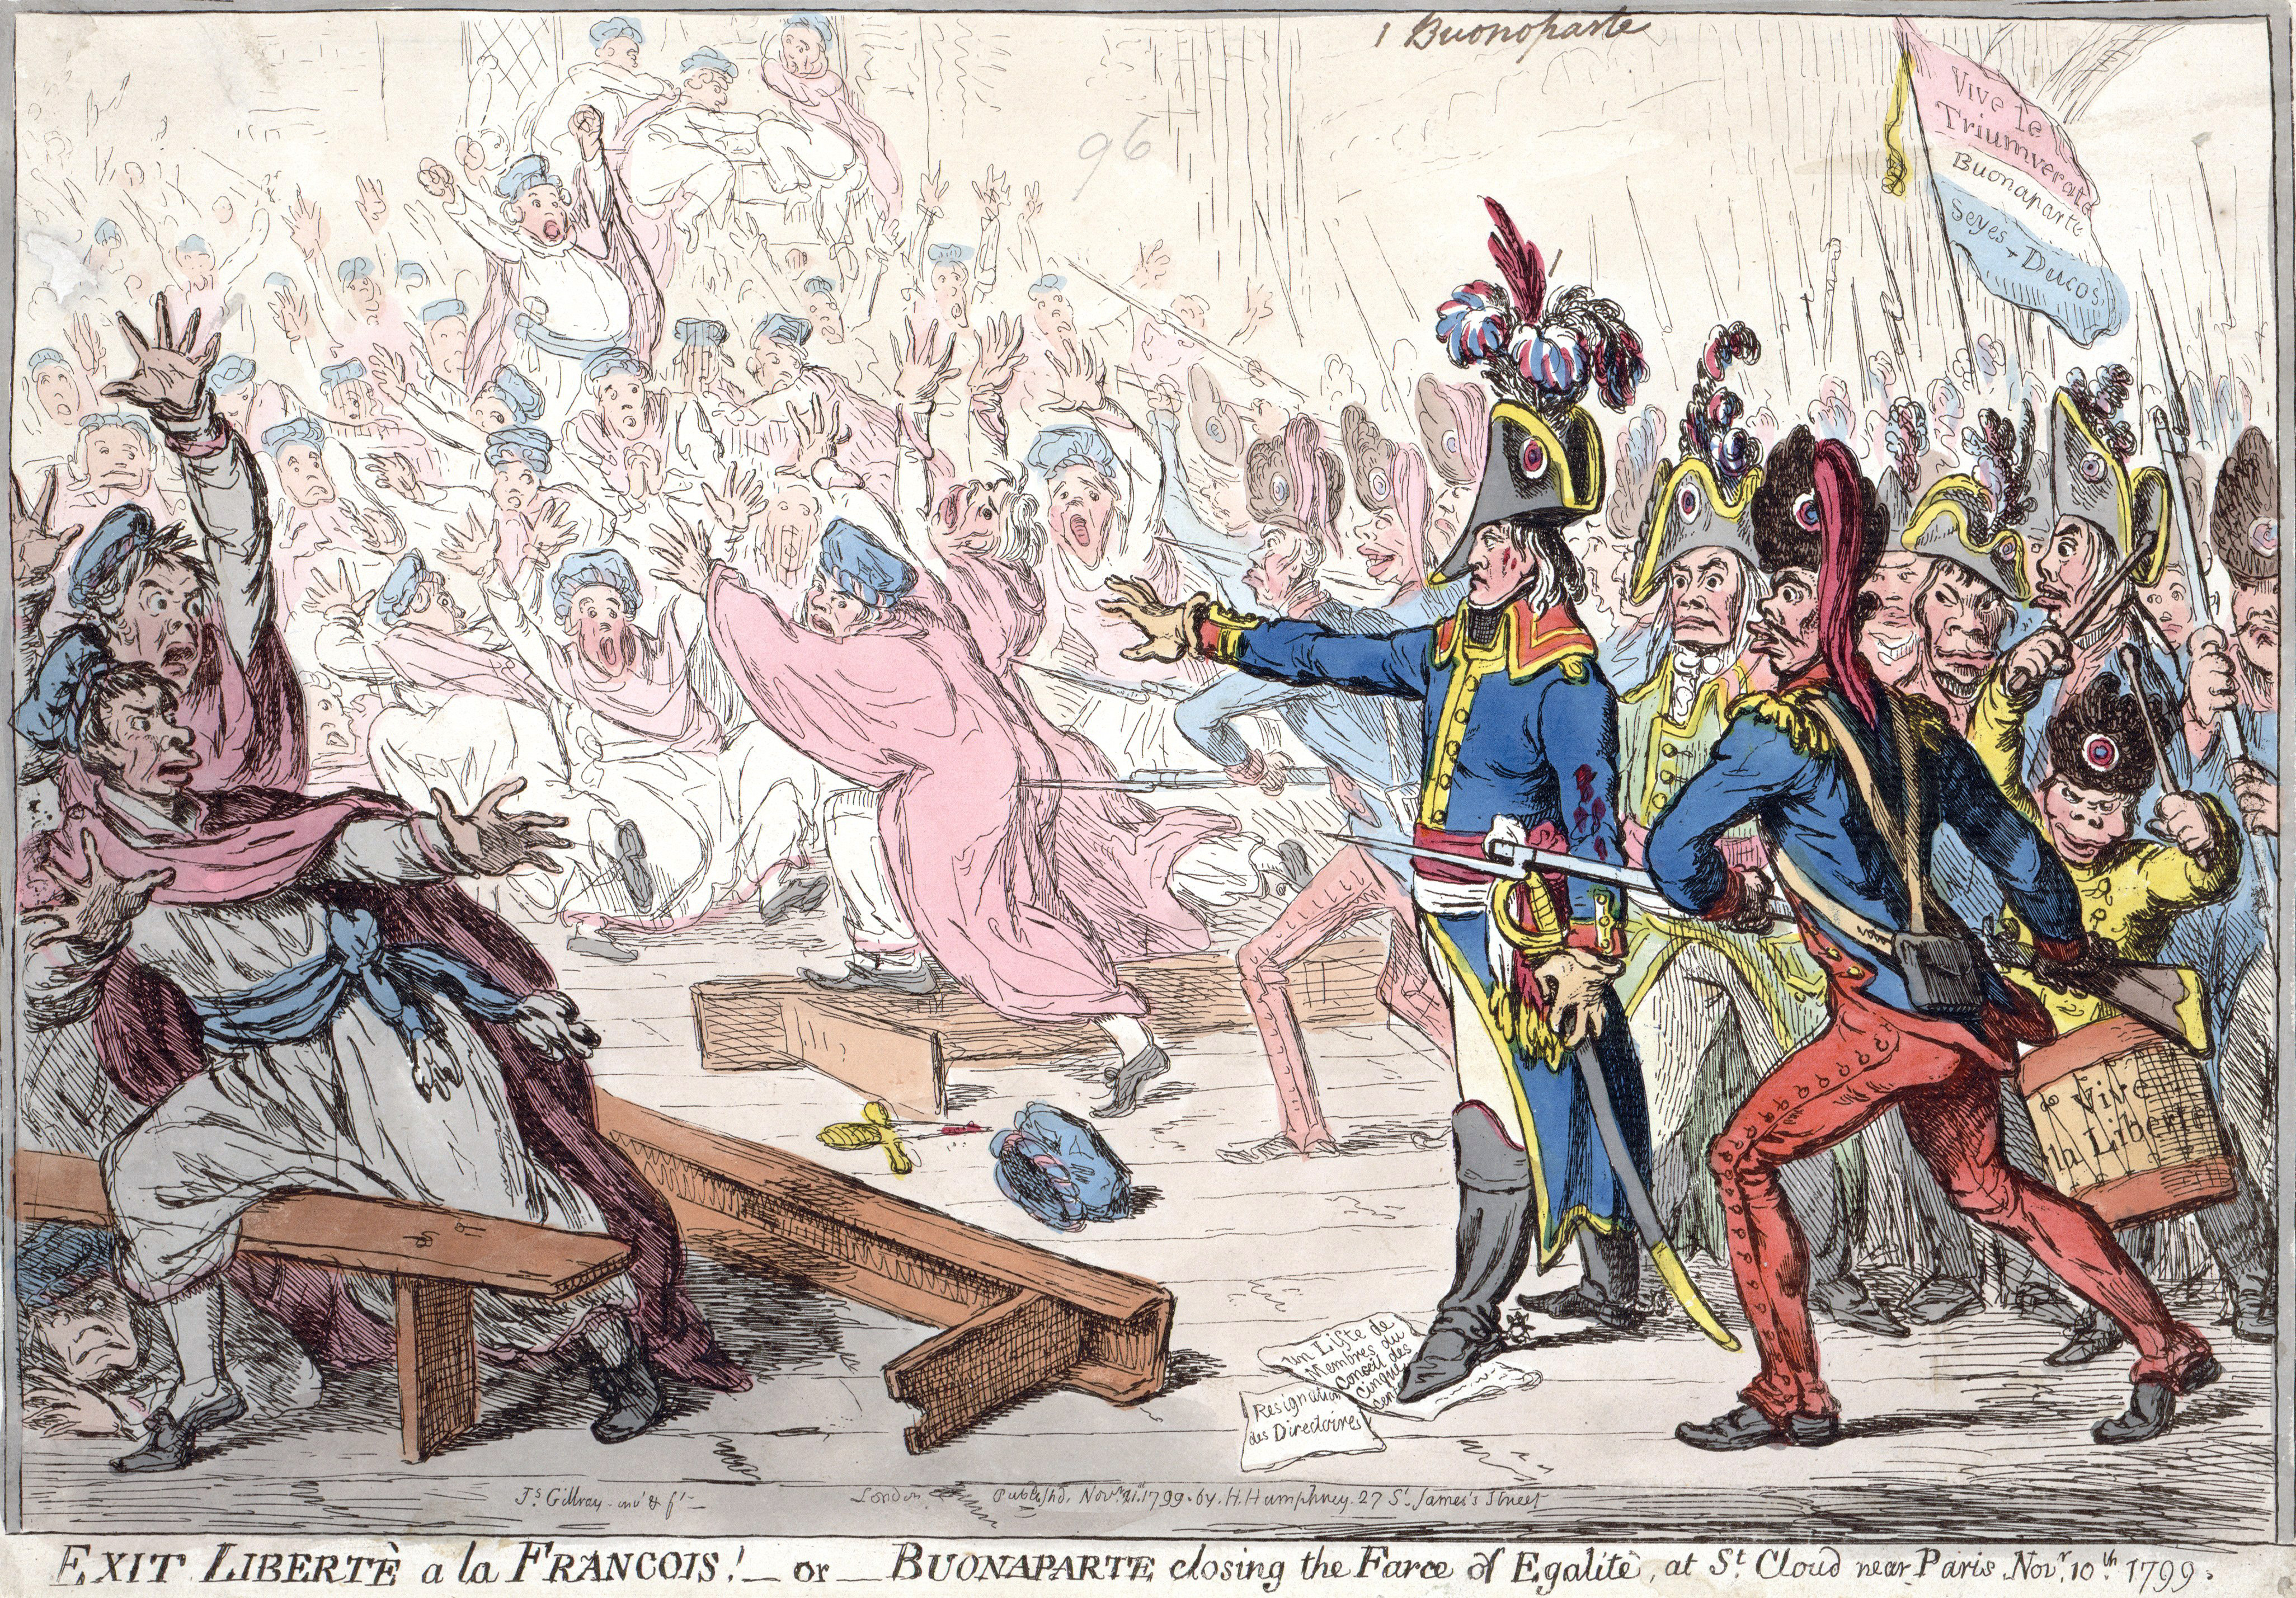 Gillray's caricature of the 18 Brumaire coup